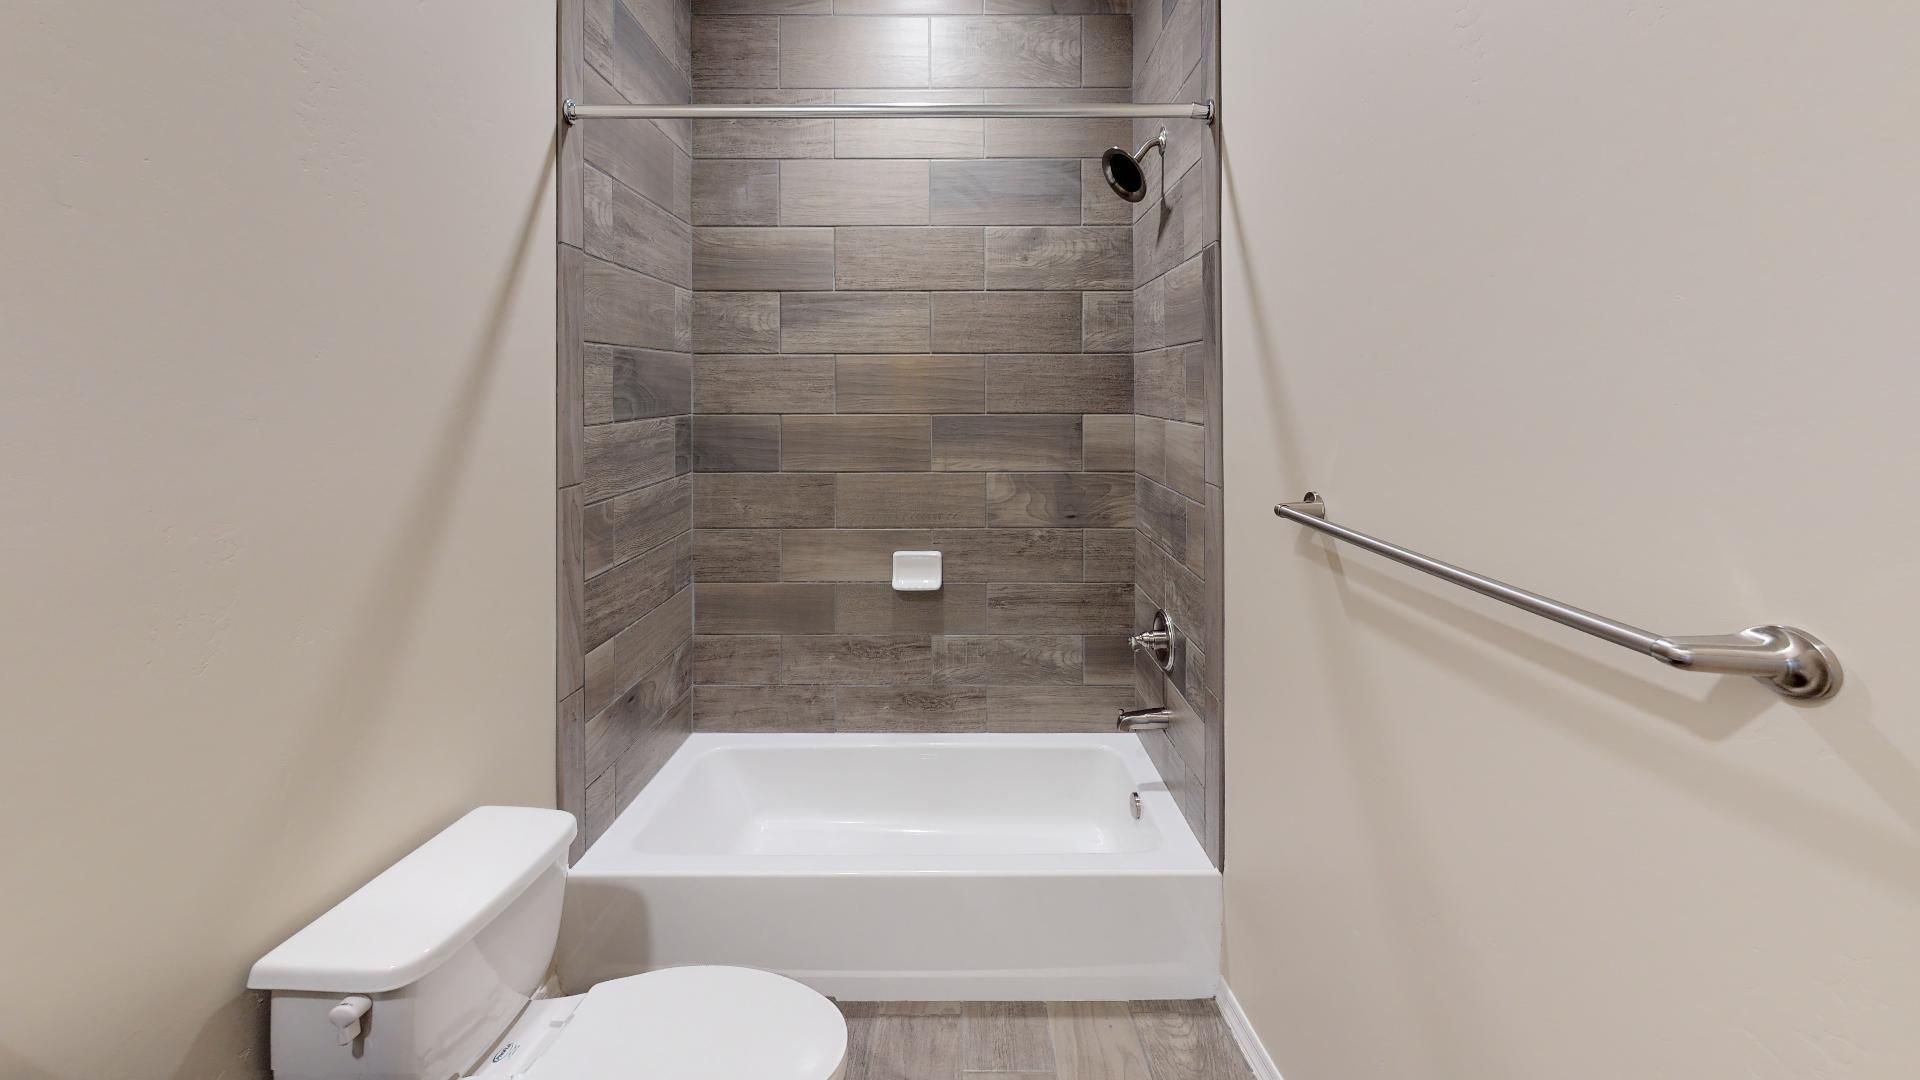 Bathroom featured in the Plan 3 By Elliott Homes - Arizona in Yuma, AZ